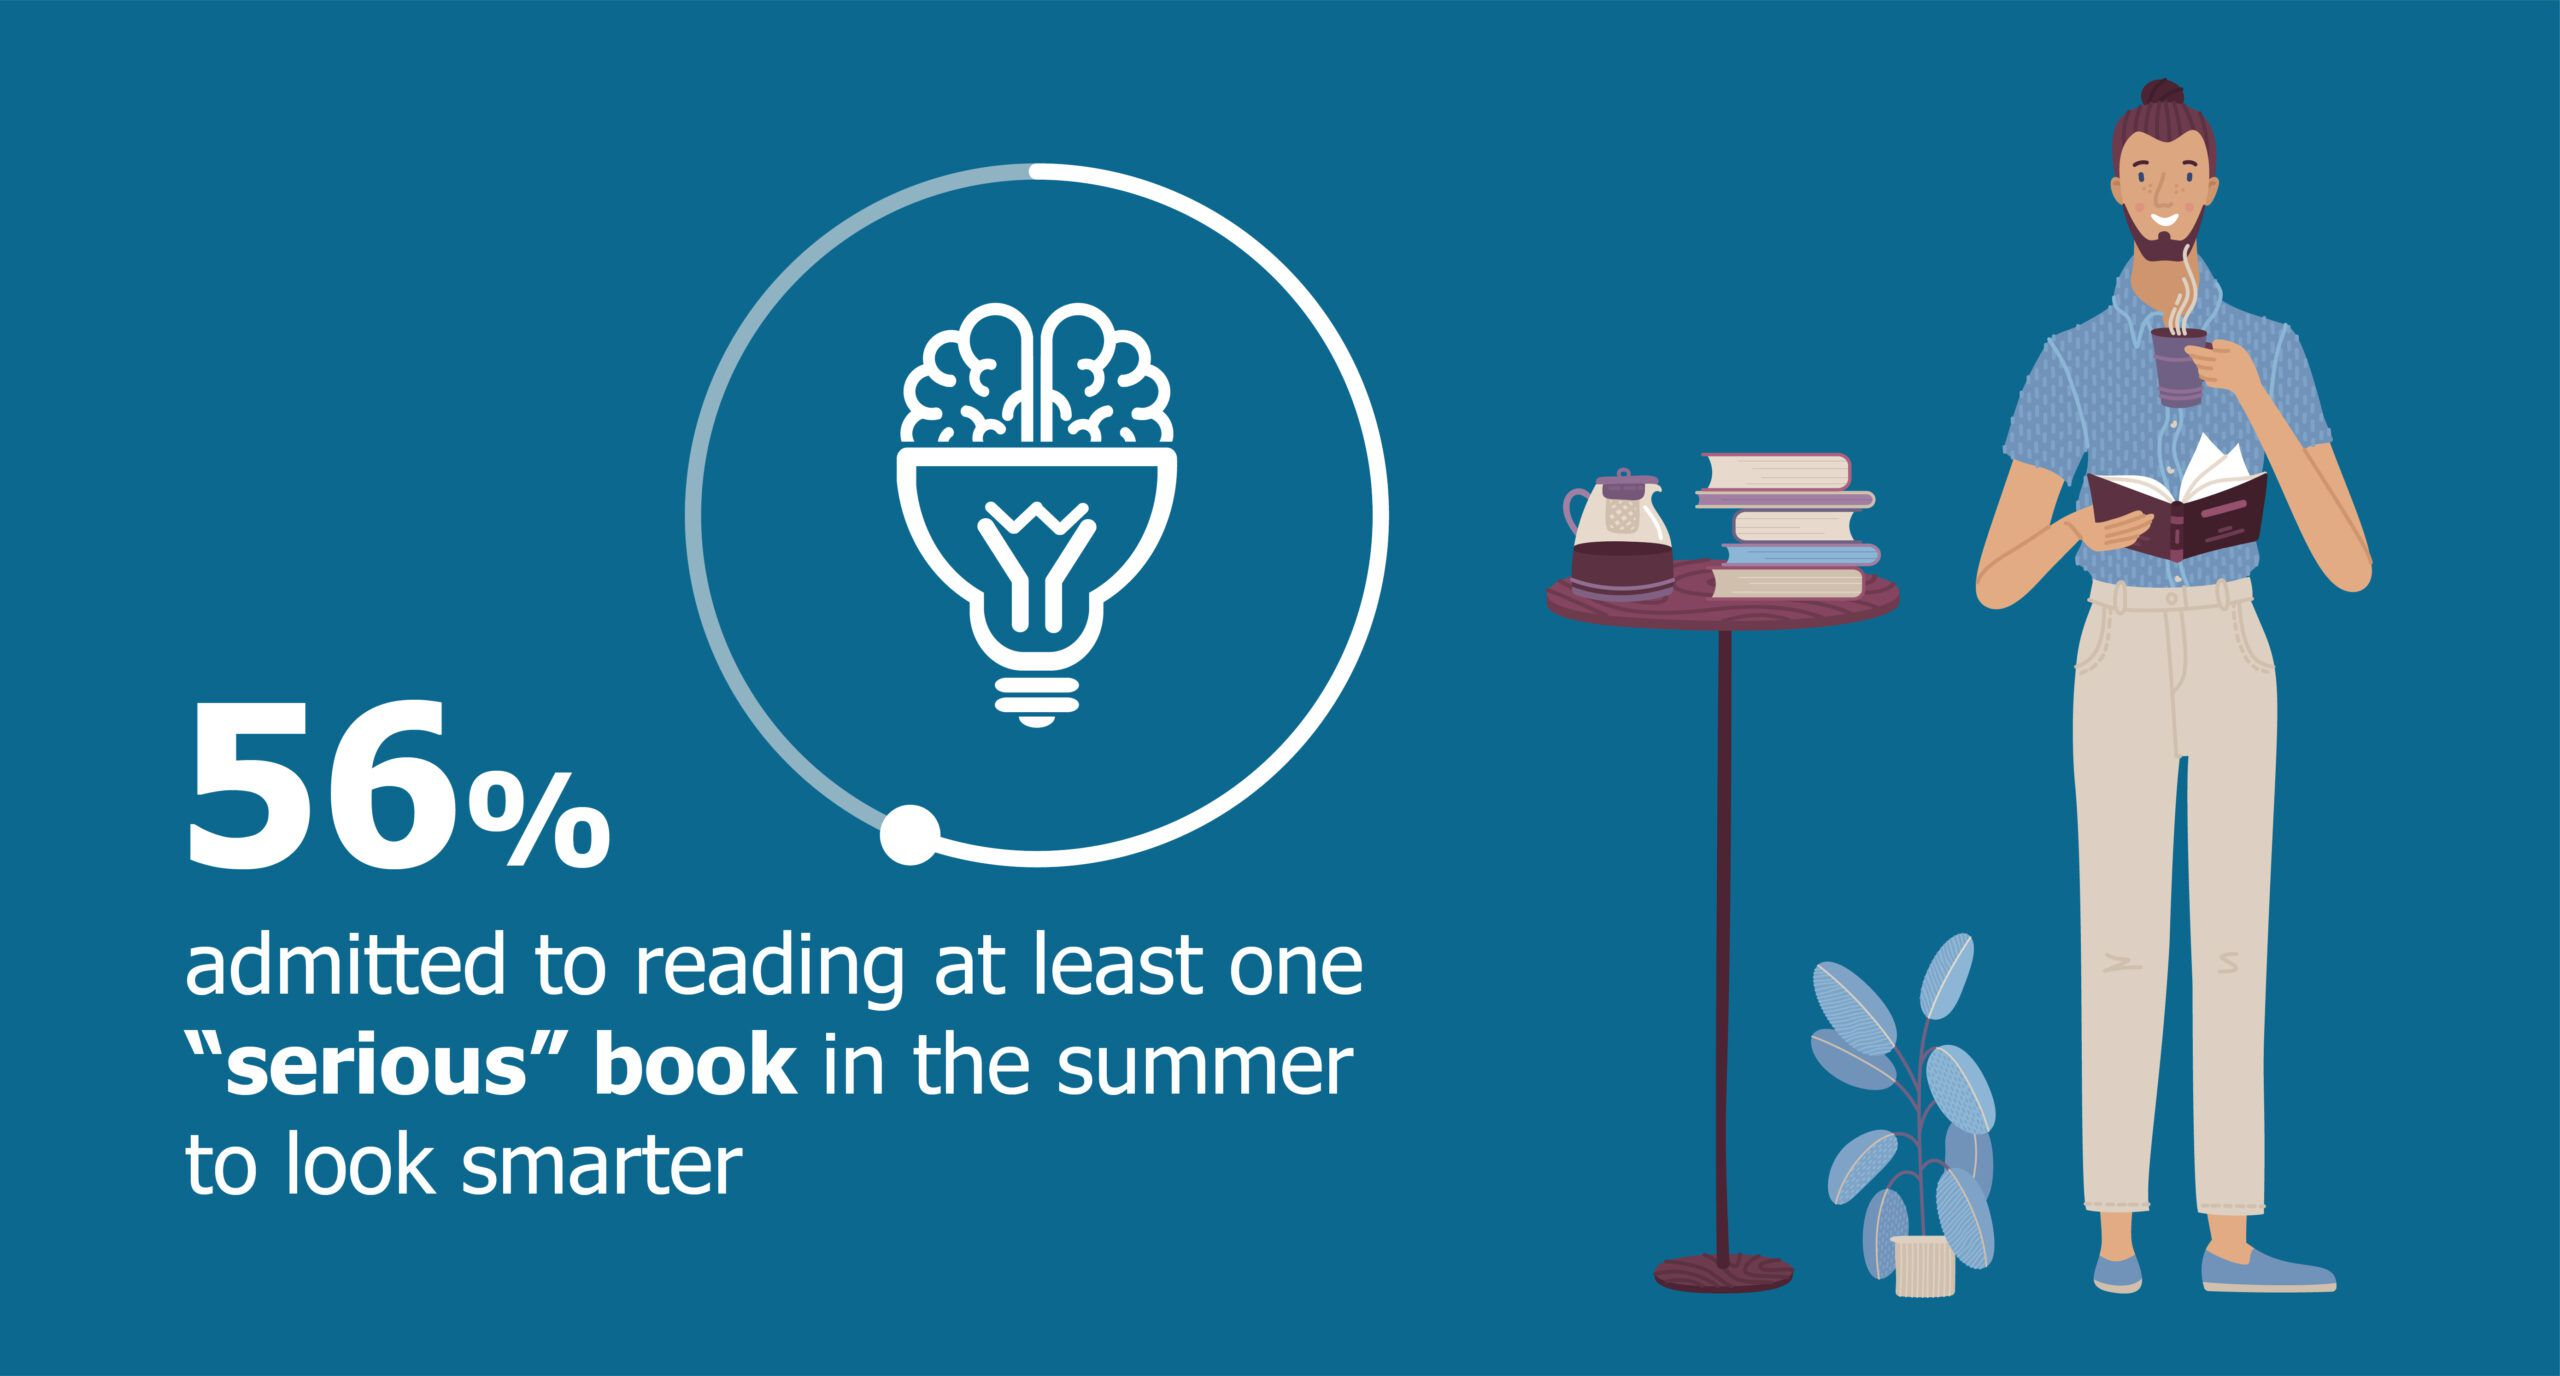 Graphic with person drinking coffee and reading books with text saying 56% of Americans admit to reading a serious book in the summer to seem smarter